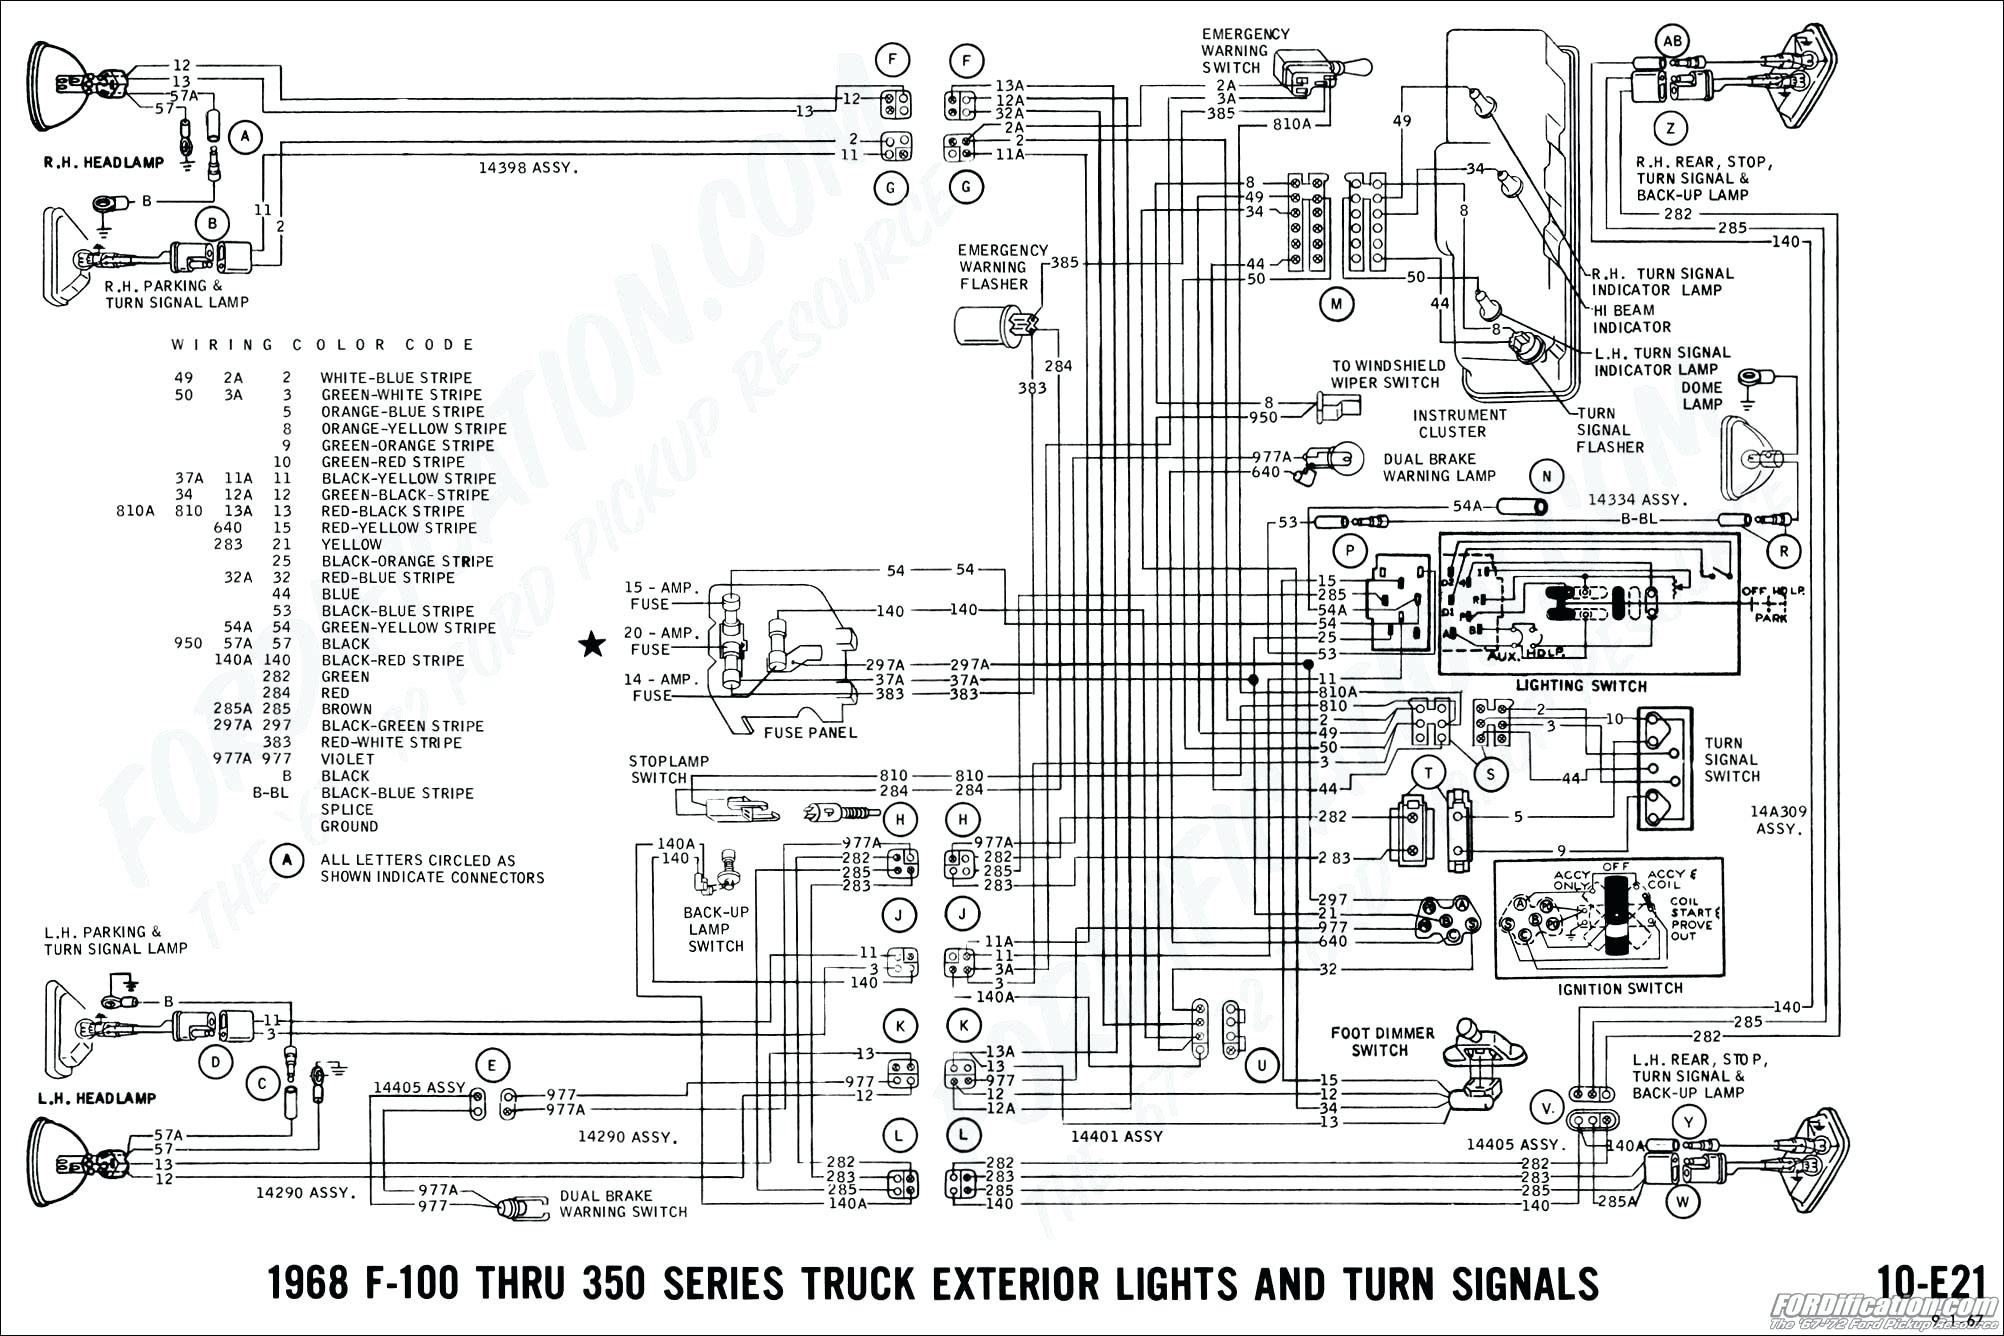 1964 ford f 250 truck wiring diagram data wiring diagrams u2022 rh mikeadkinsguitar com 1964 ford falcon wiring diagram 1964 falcon ignition wiring diagram